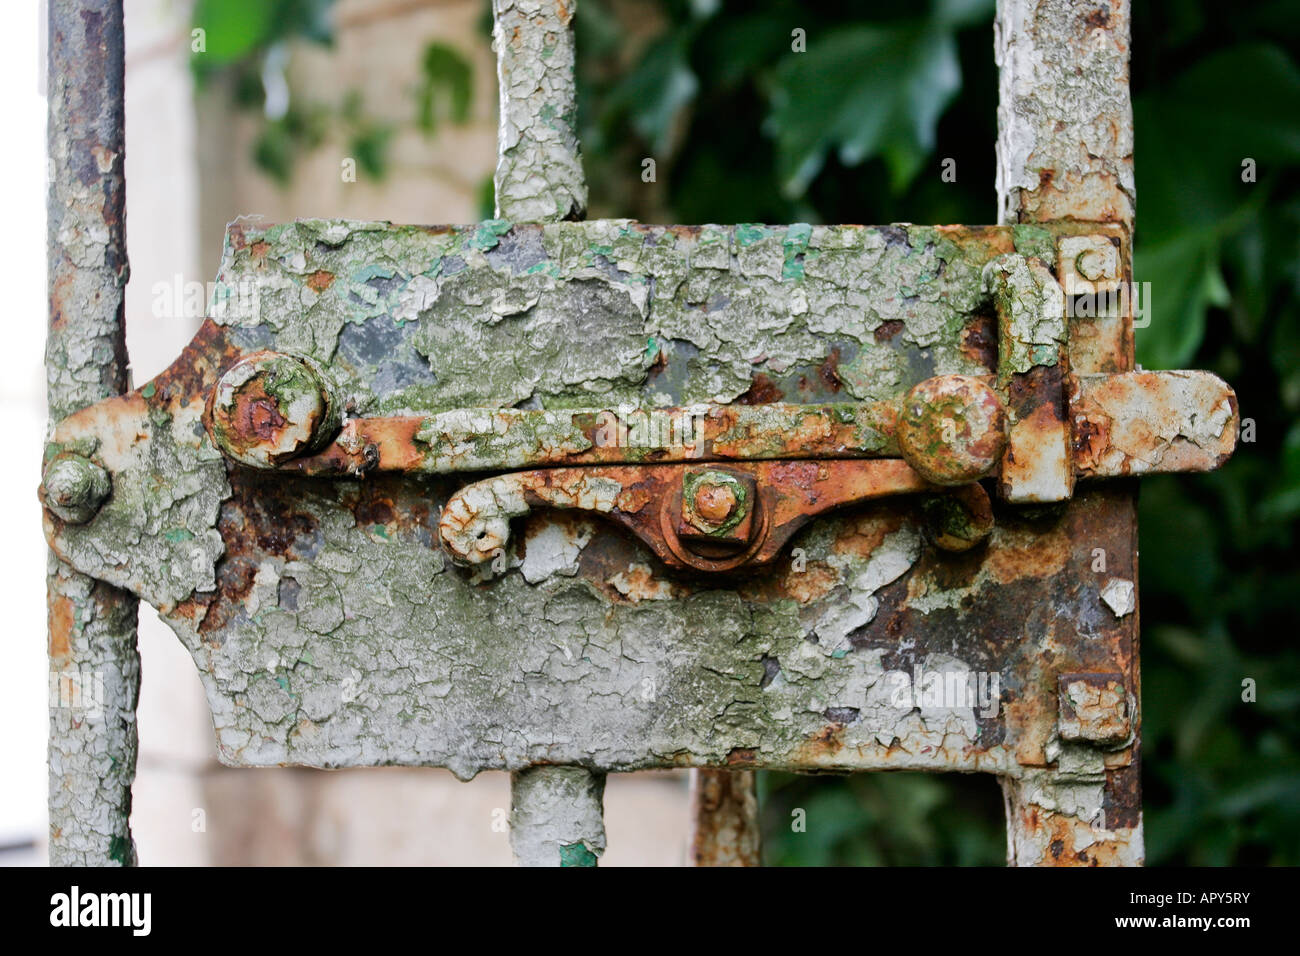 Painted Rusty Old Garden Gate Latch